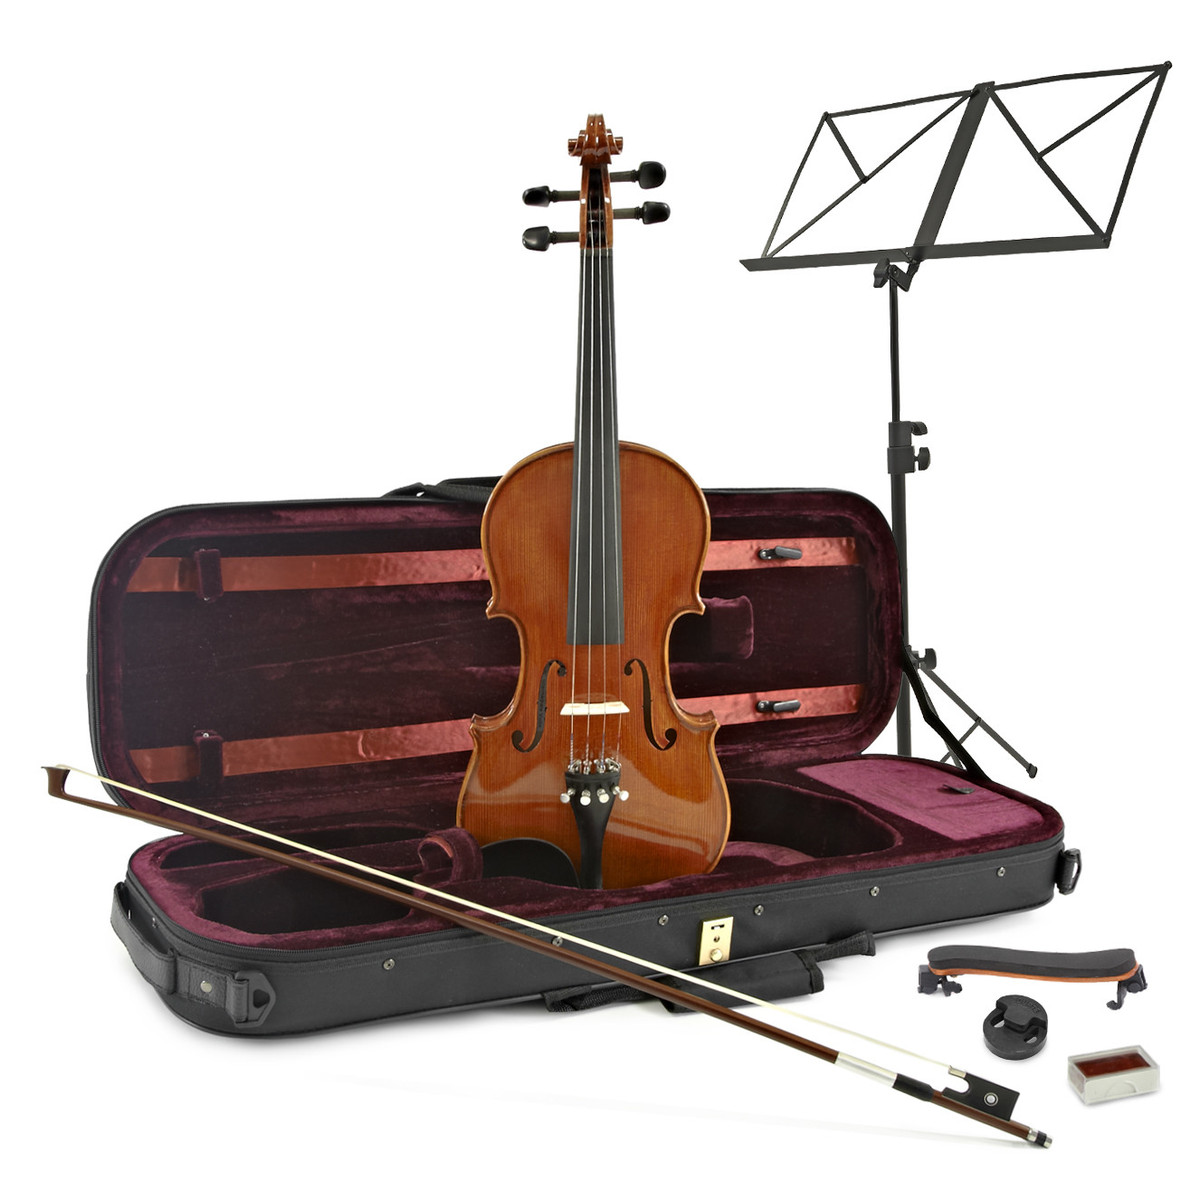 Image of Archer Swift Intermediate Violin + Player Pack by Gear4music